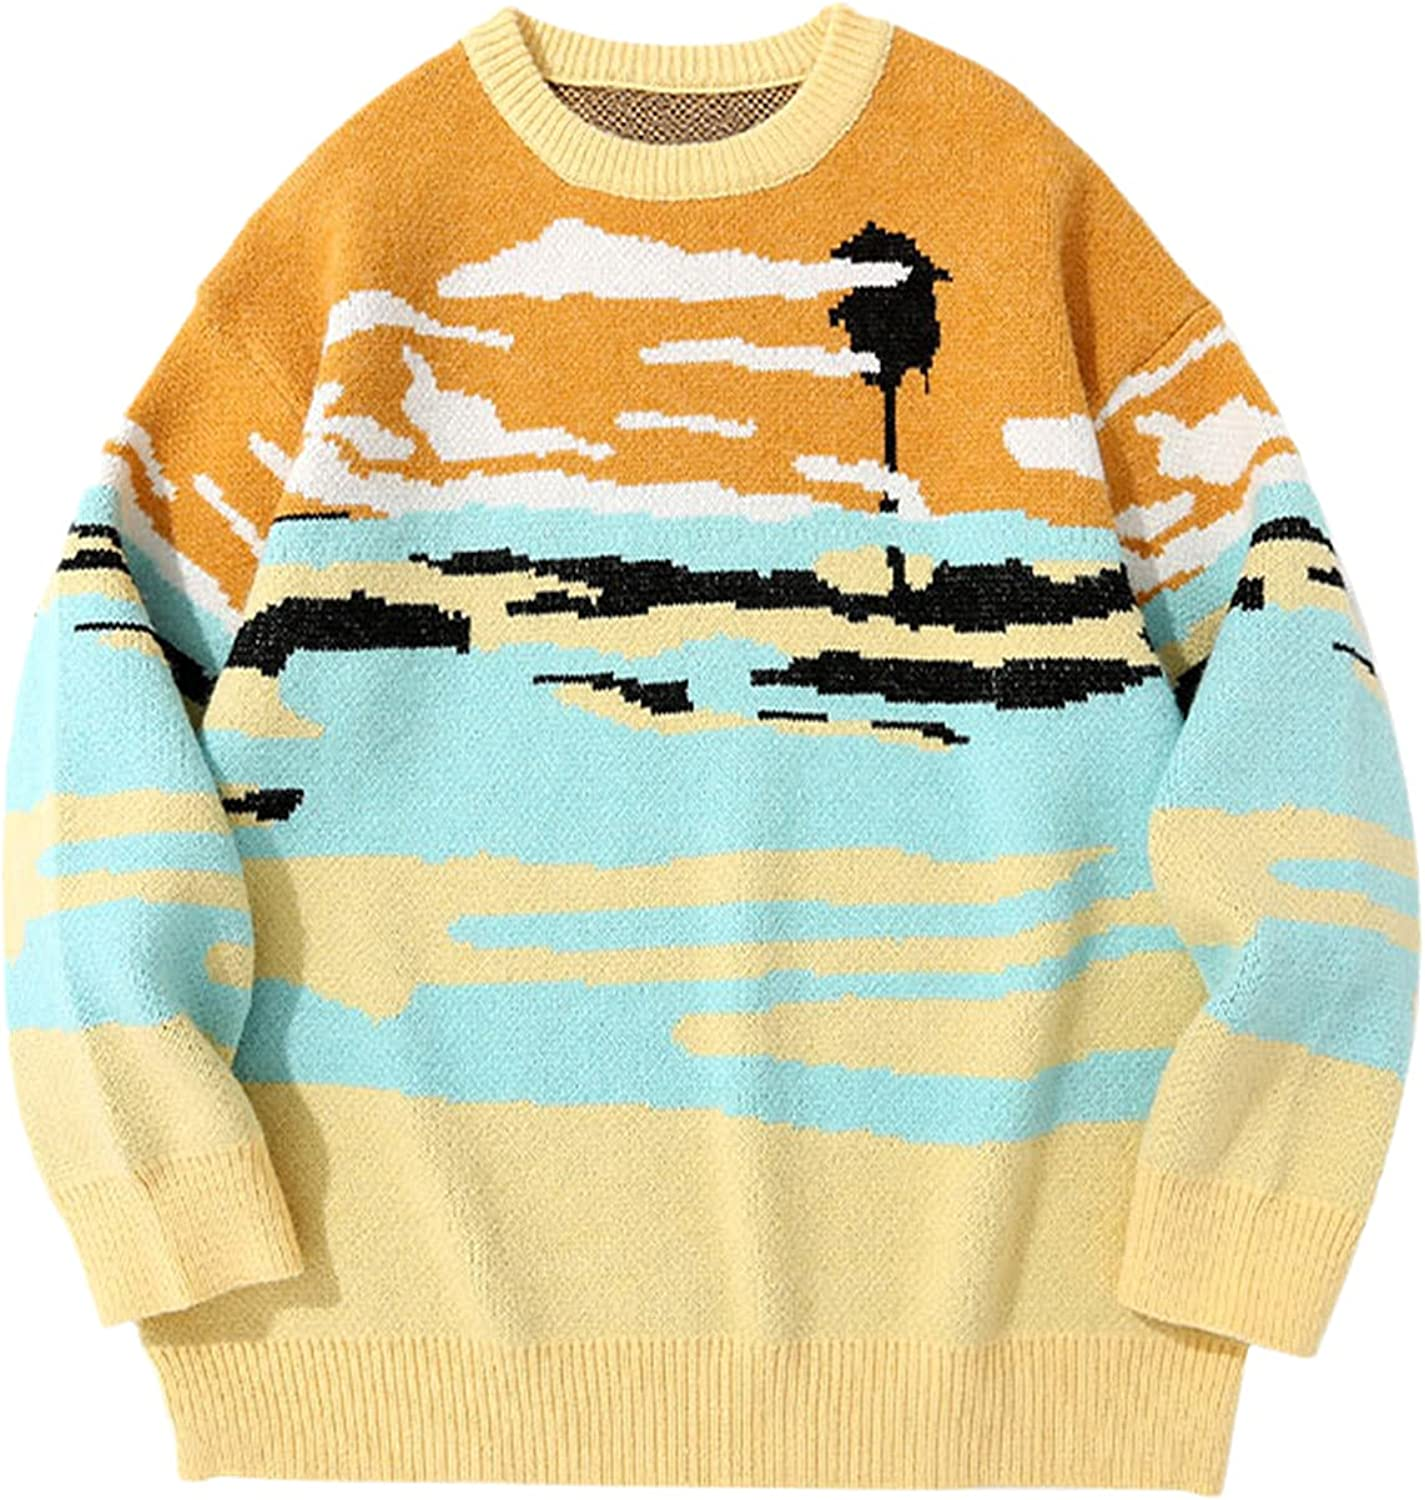 Sweaters Streetwear Hip Hop Knitted Stripe Pullover Jumpers Harajuku Fashion Casual Knitwear Mens Tops Outerwear